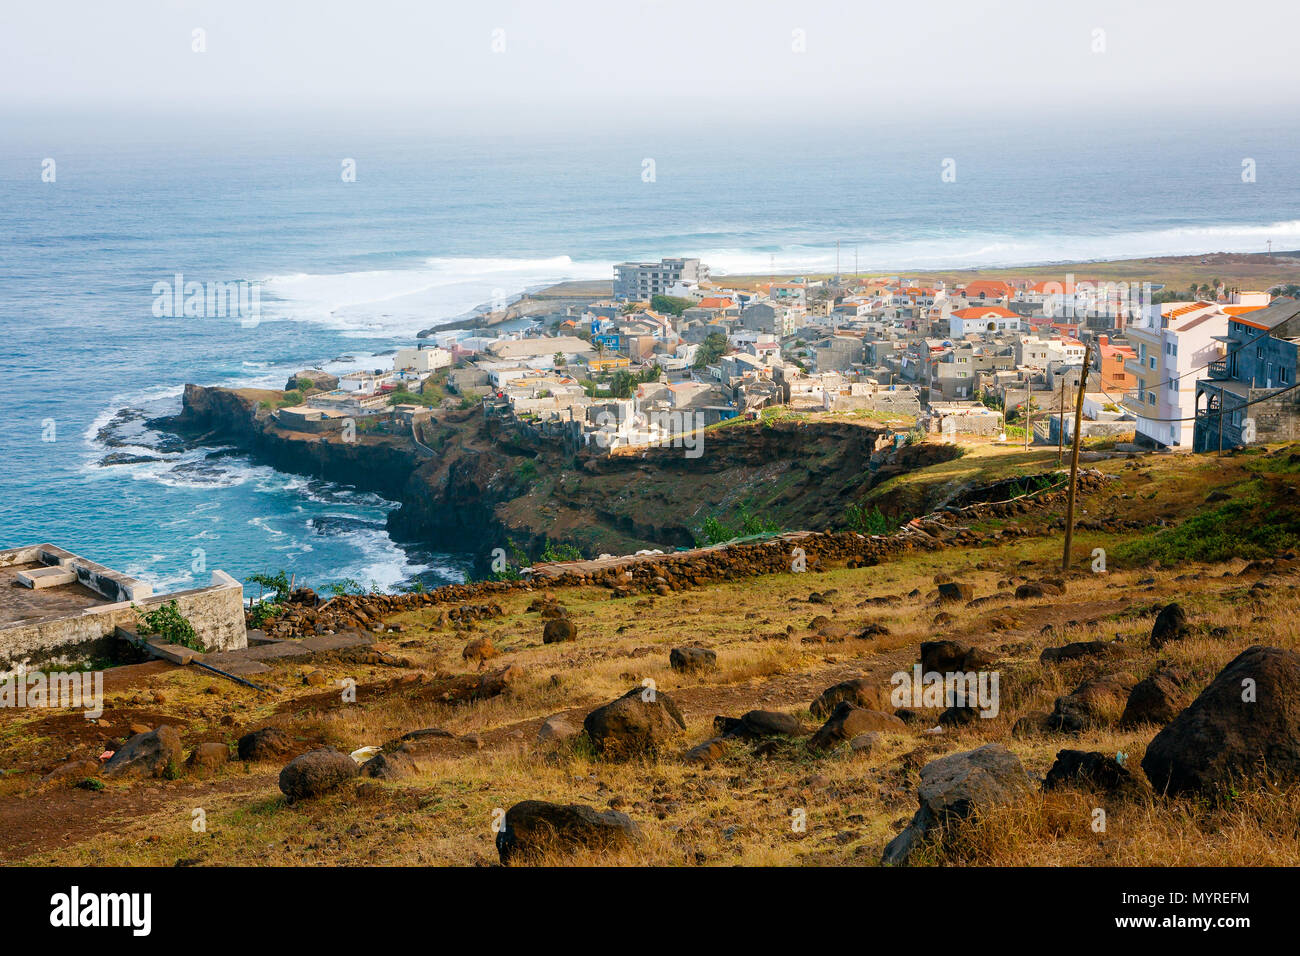 Ponta do Sol Cape Verde. View of the fishing village at the